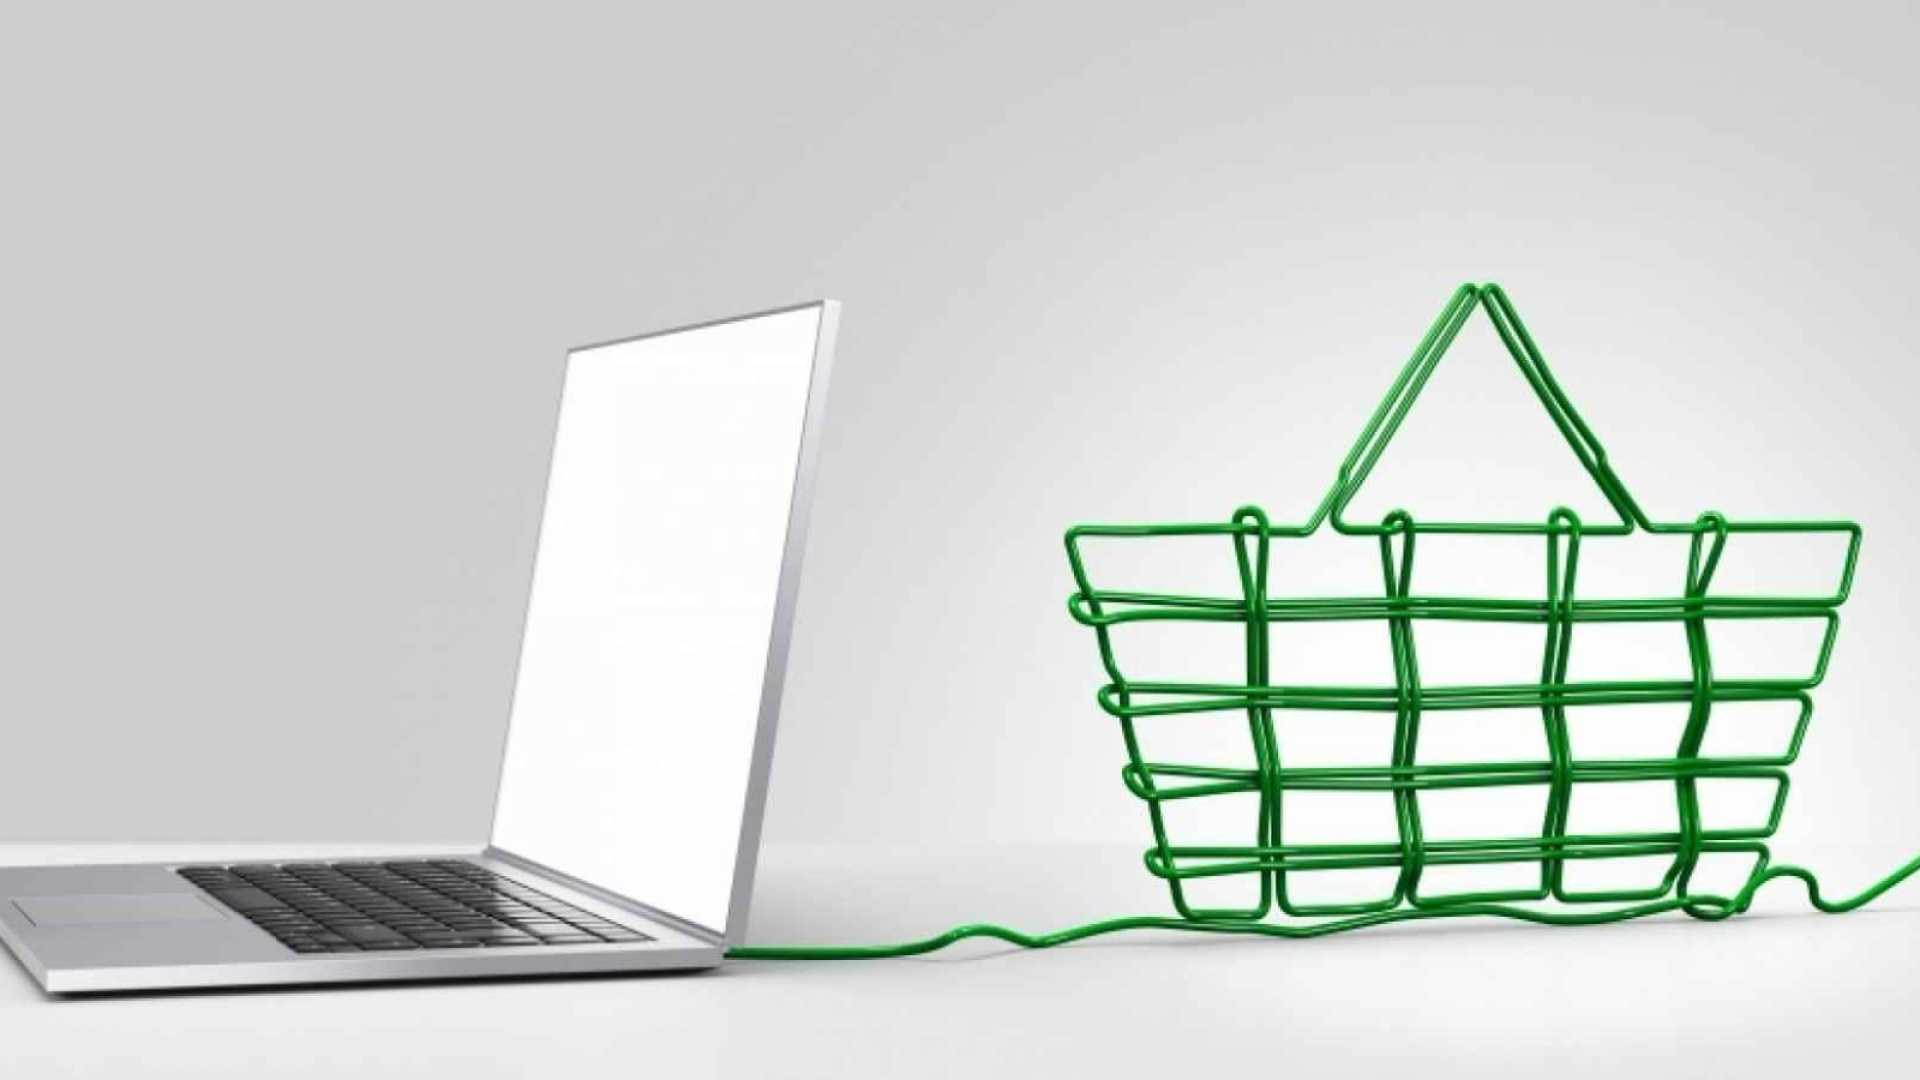 3 Steps to Conquering E-Commerce in 2016